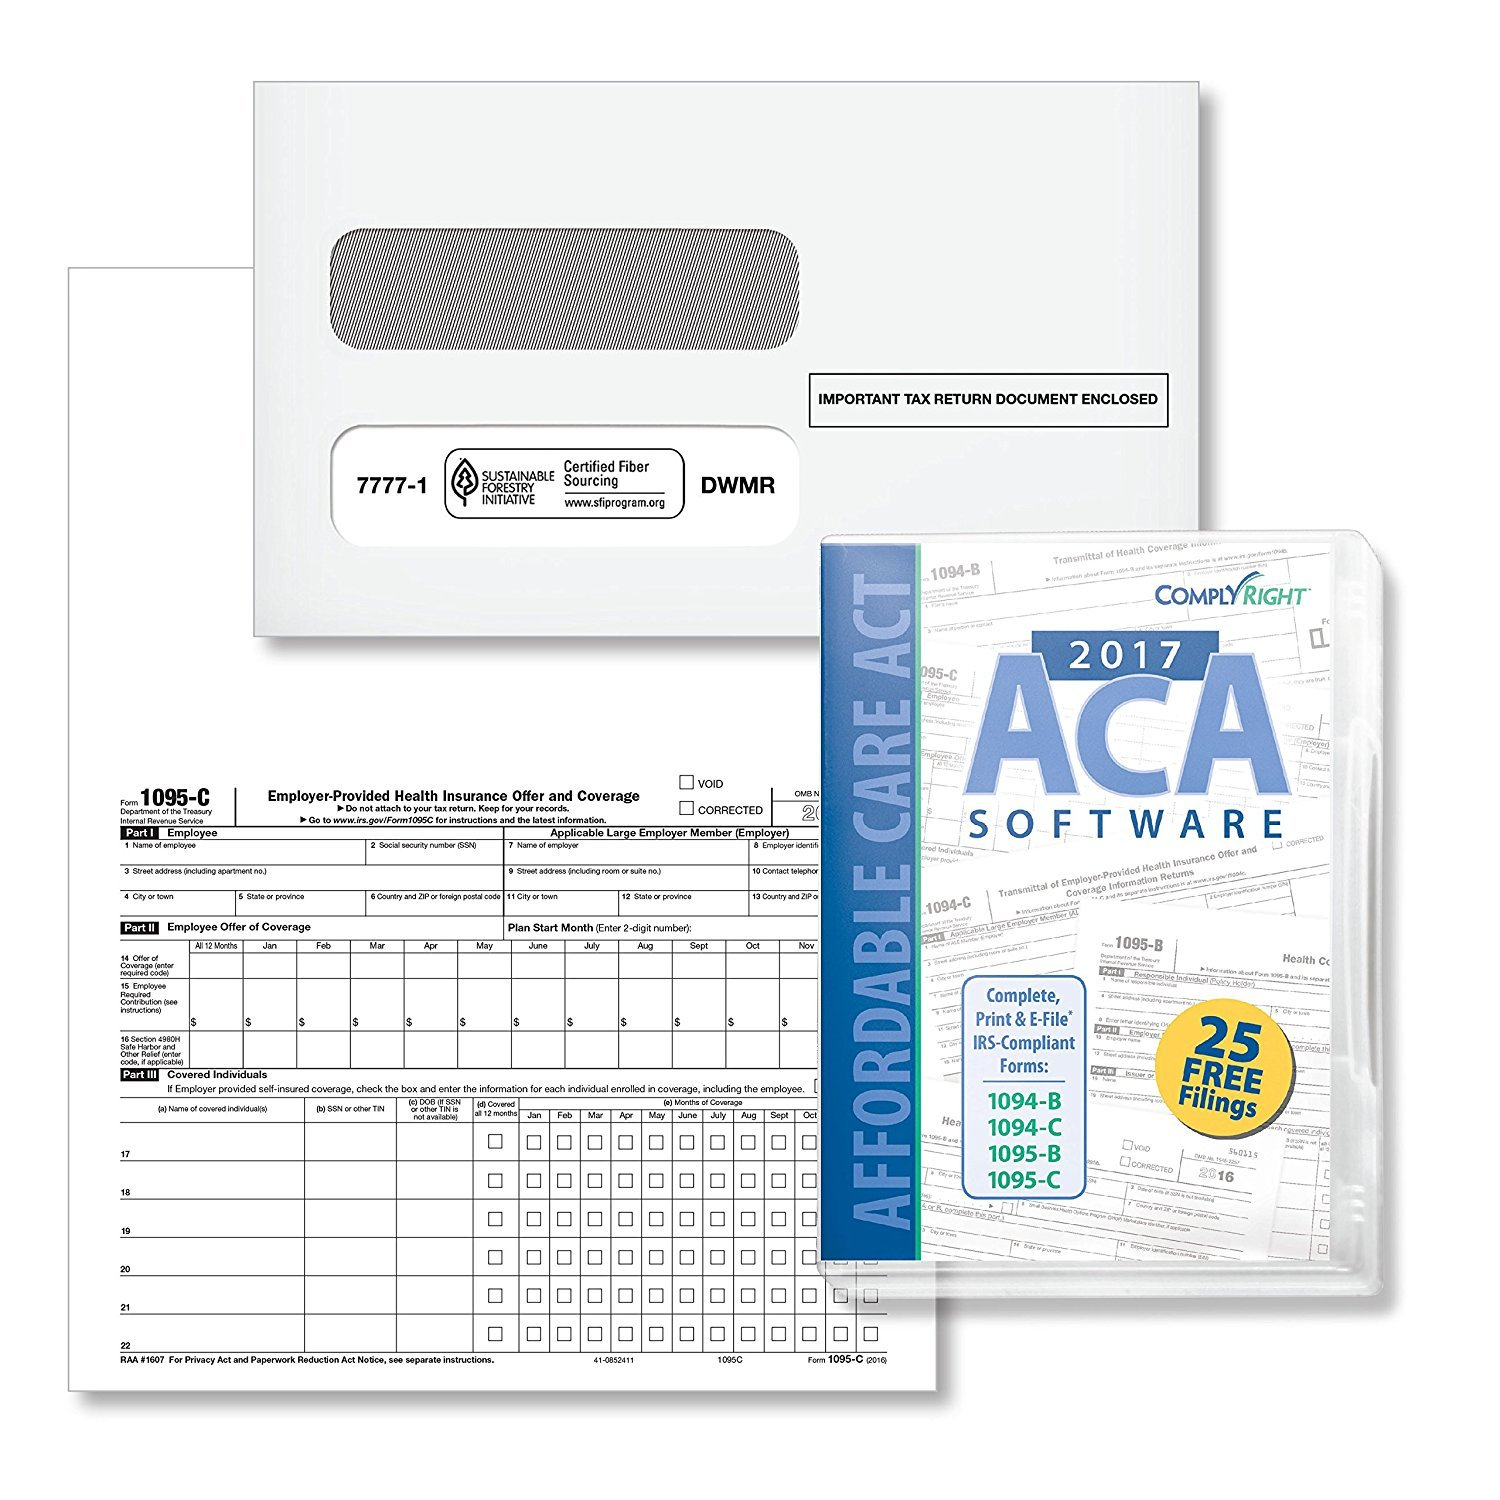 Form 1095-C Health Coverage and Envelopes with ACA Software (Includes 6 1094-B Transmittal Forms), Pack for 100 Employees -2019- by DutyMark